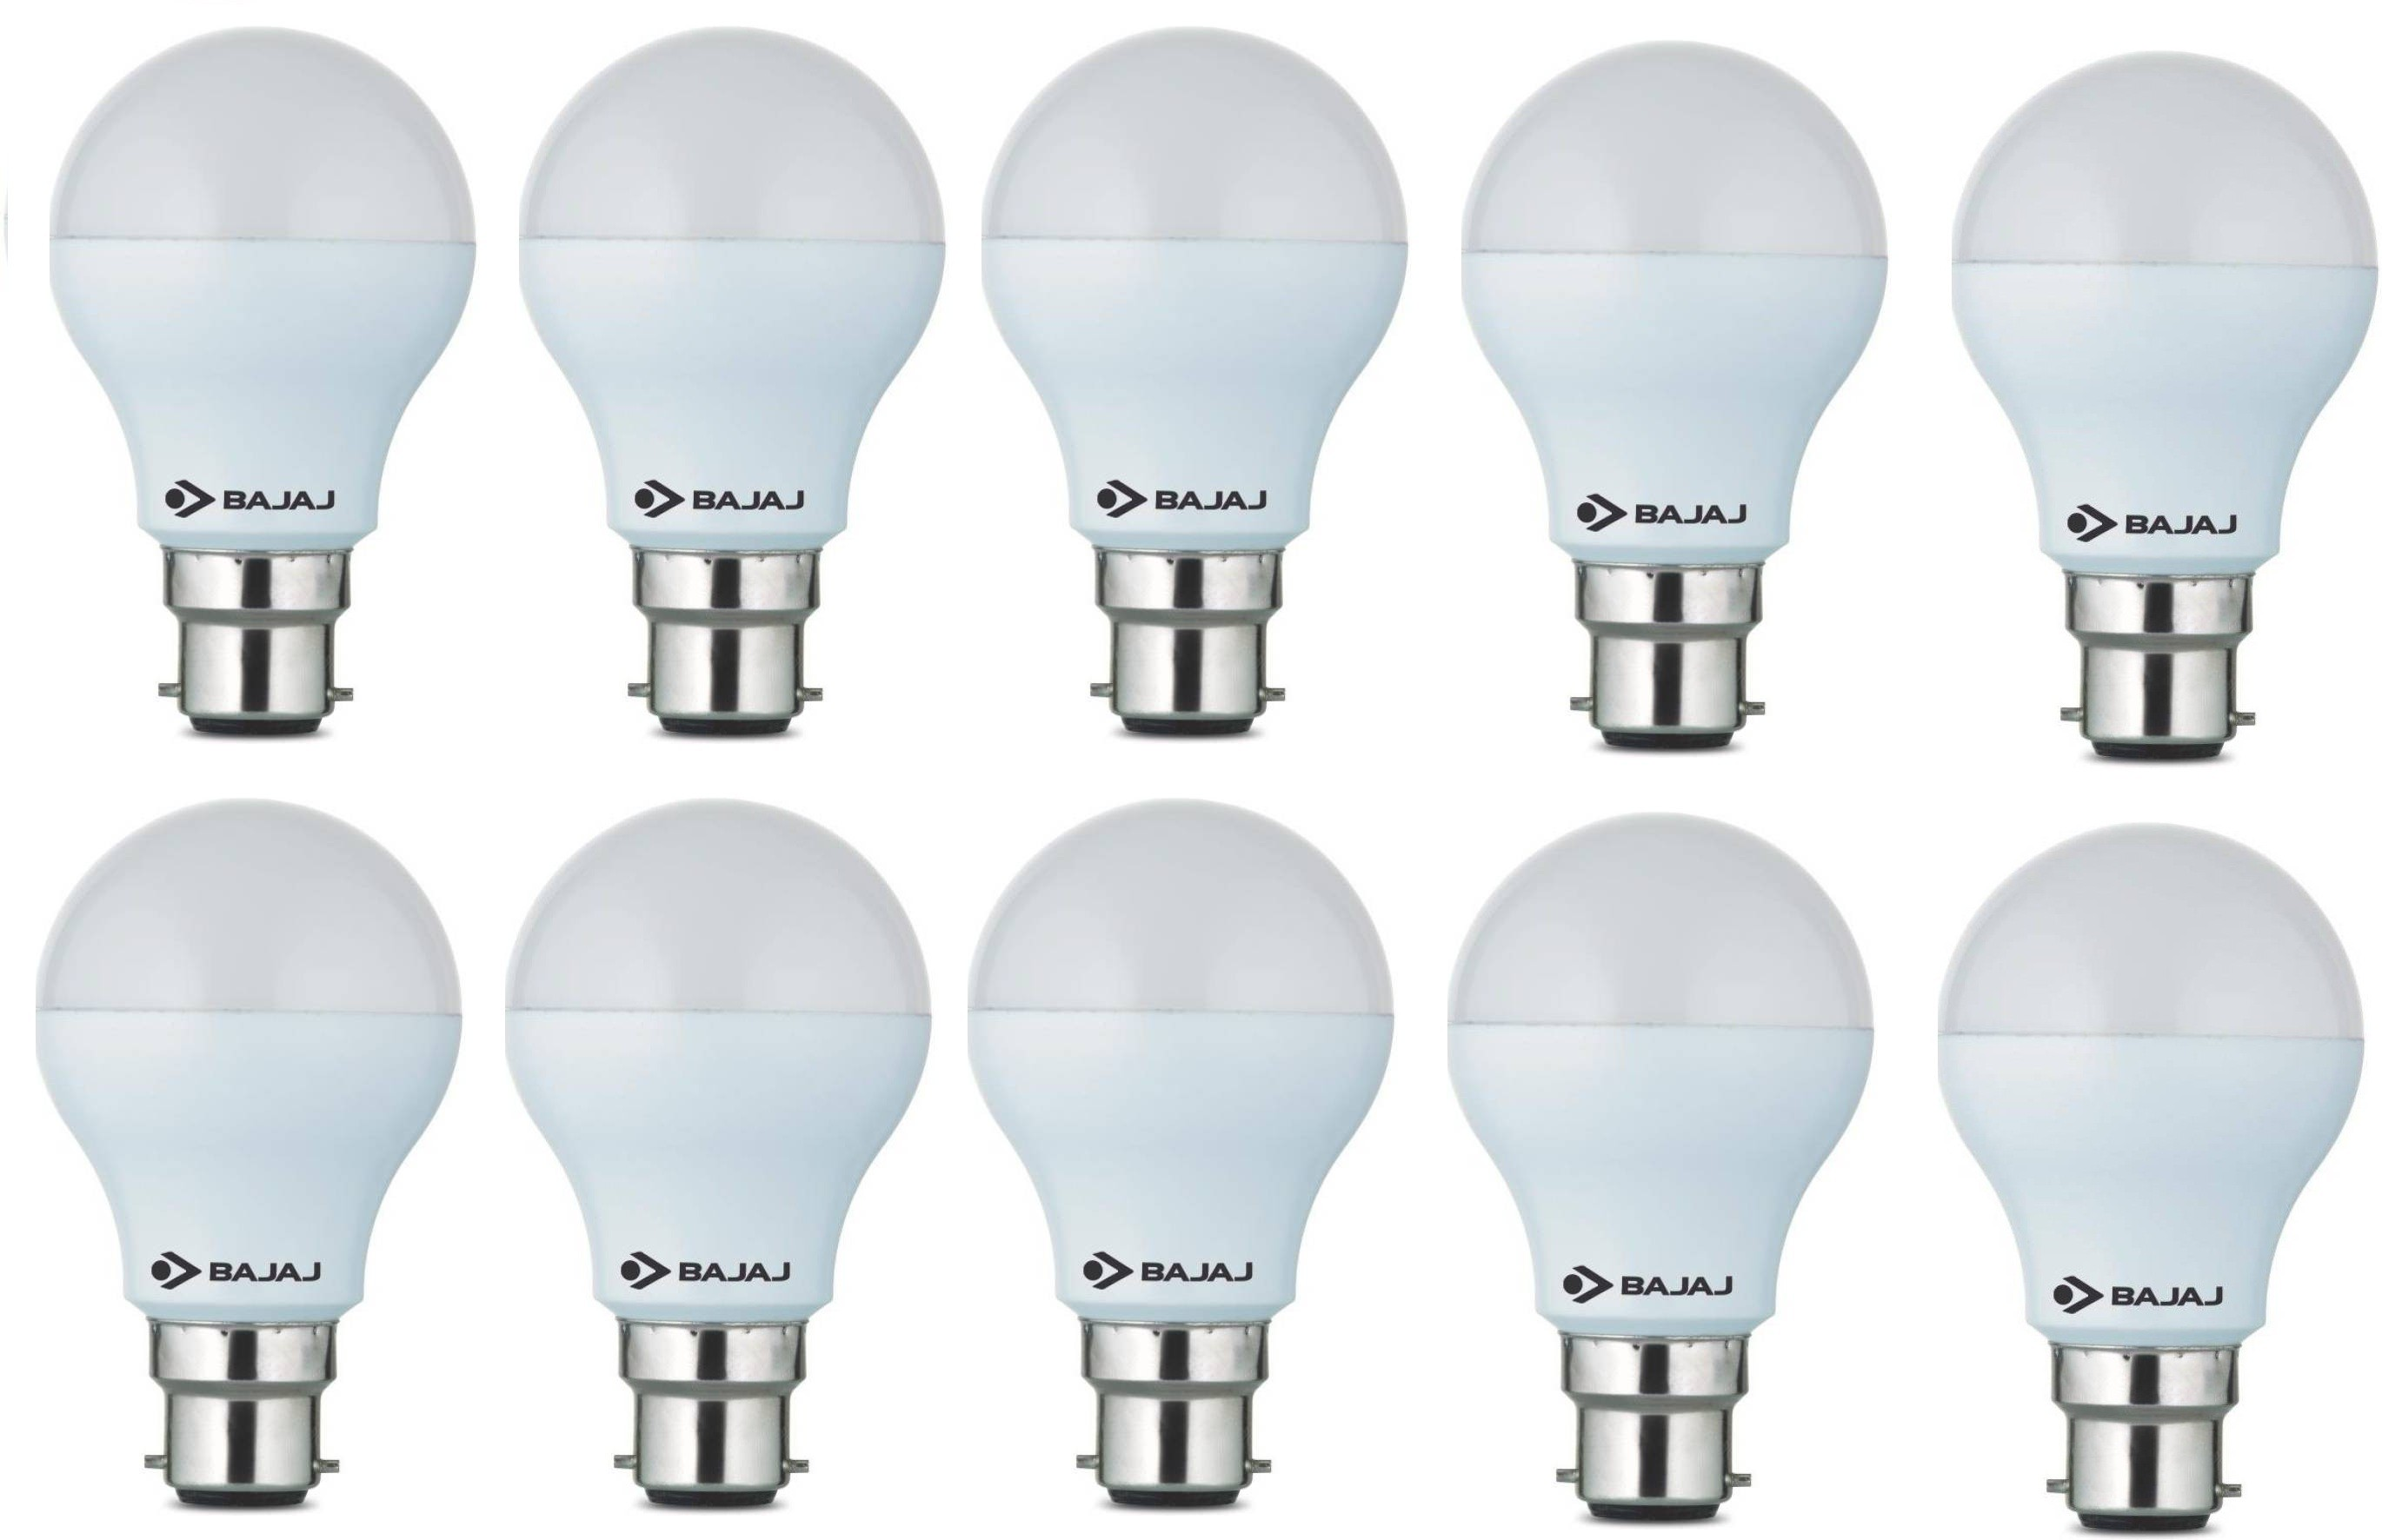 Bajaj 9 W Round B22 LED Bulb(White, Pack of 10) Image